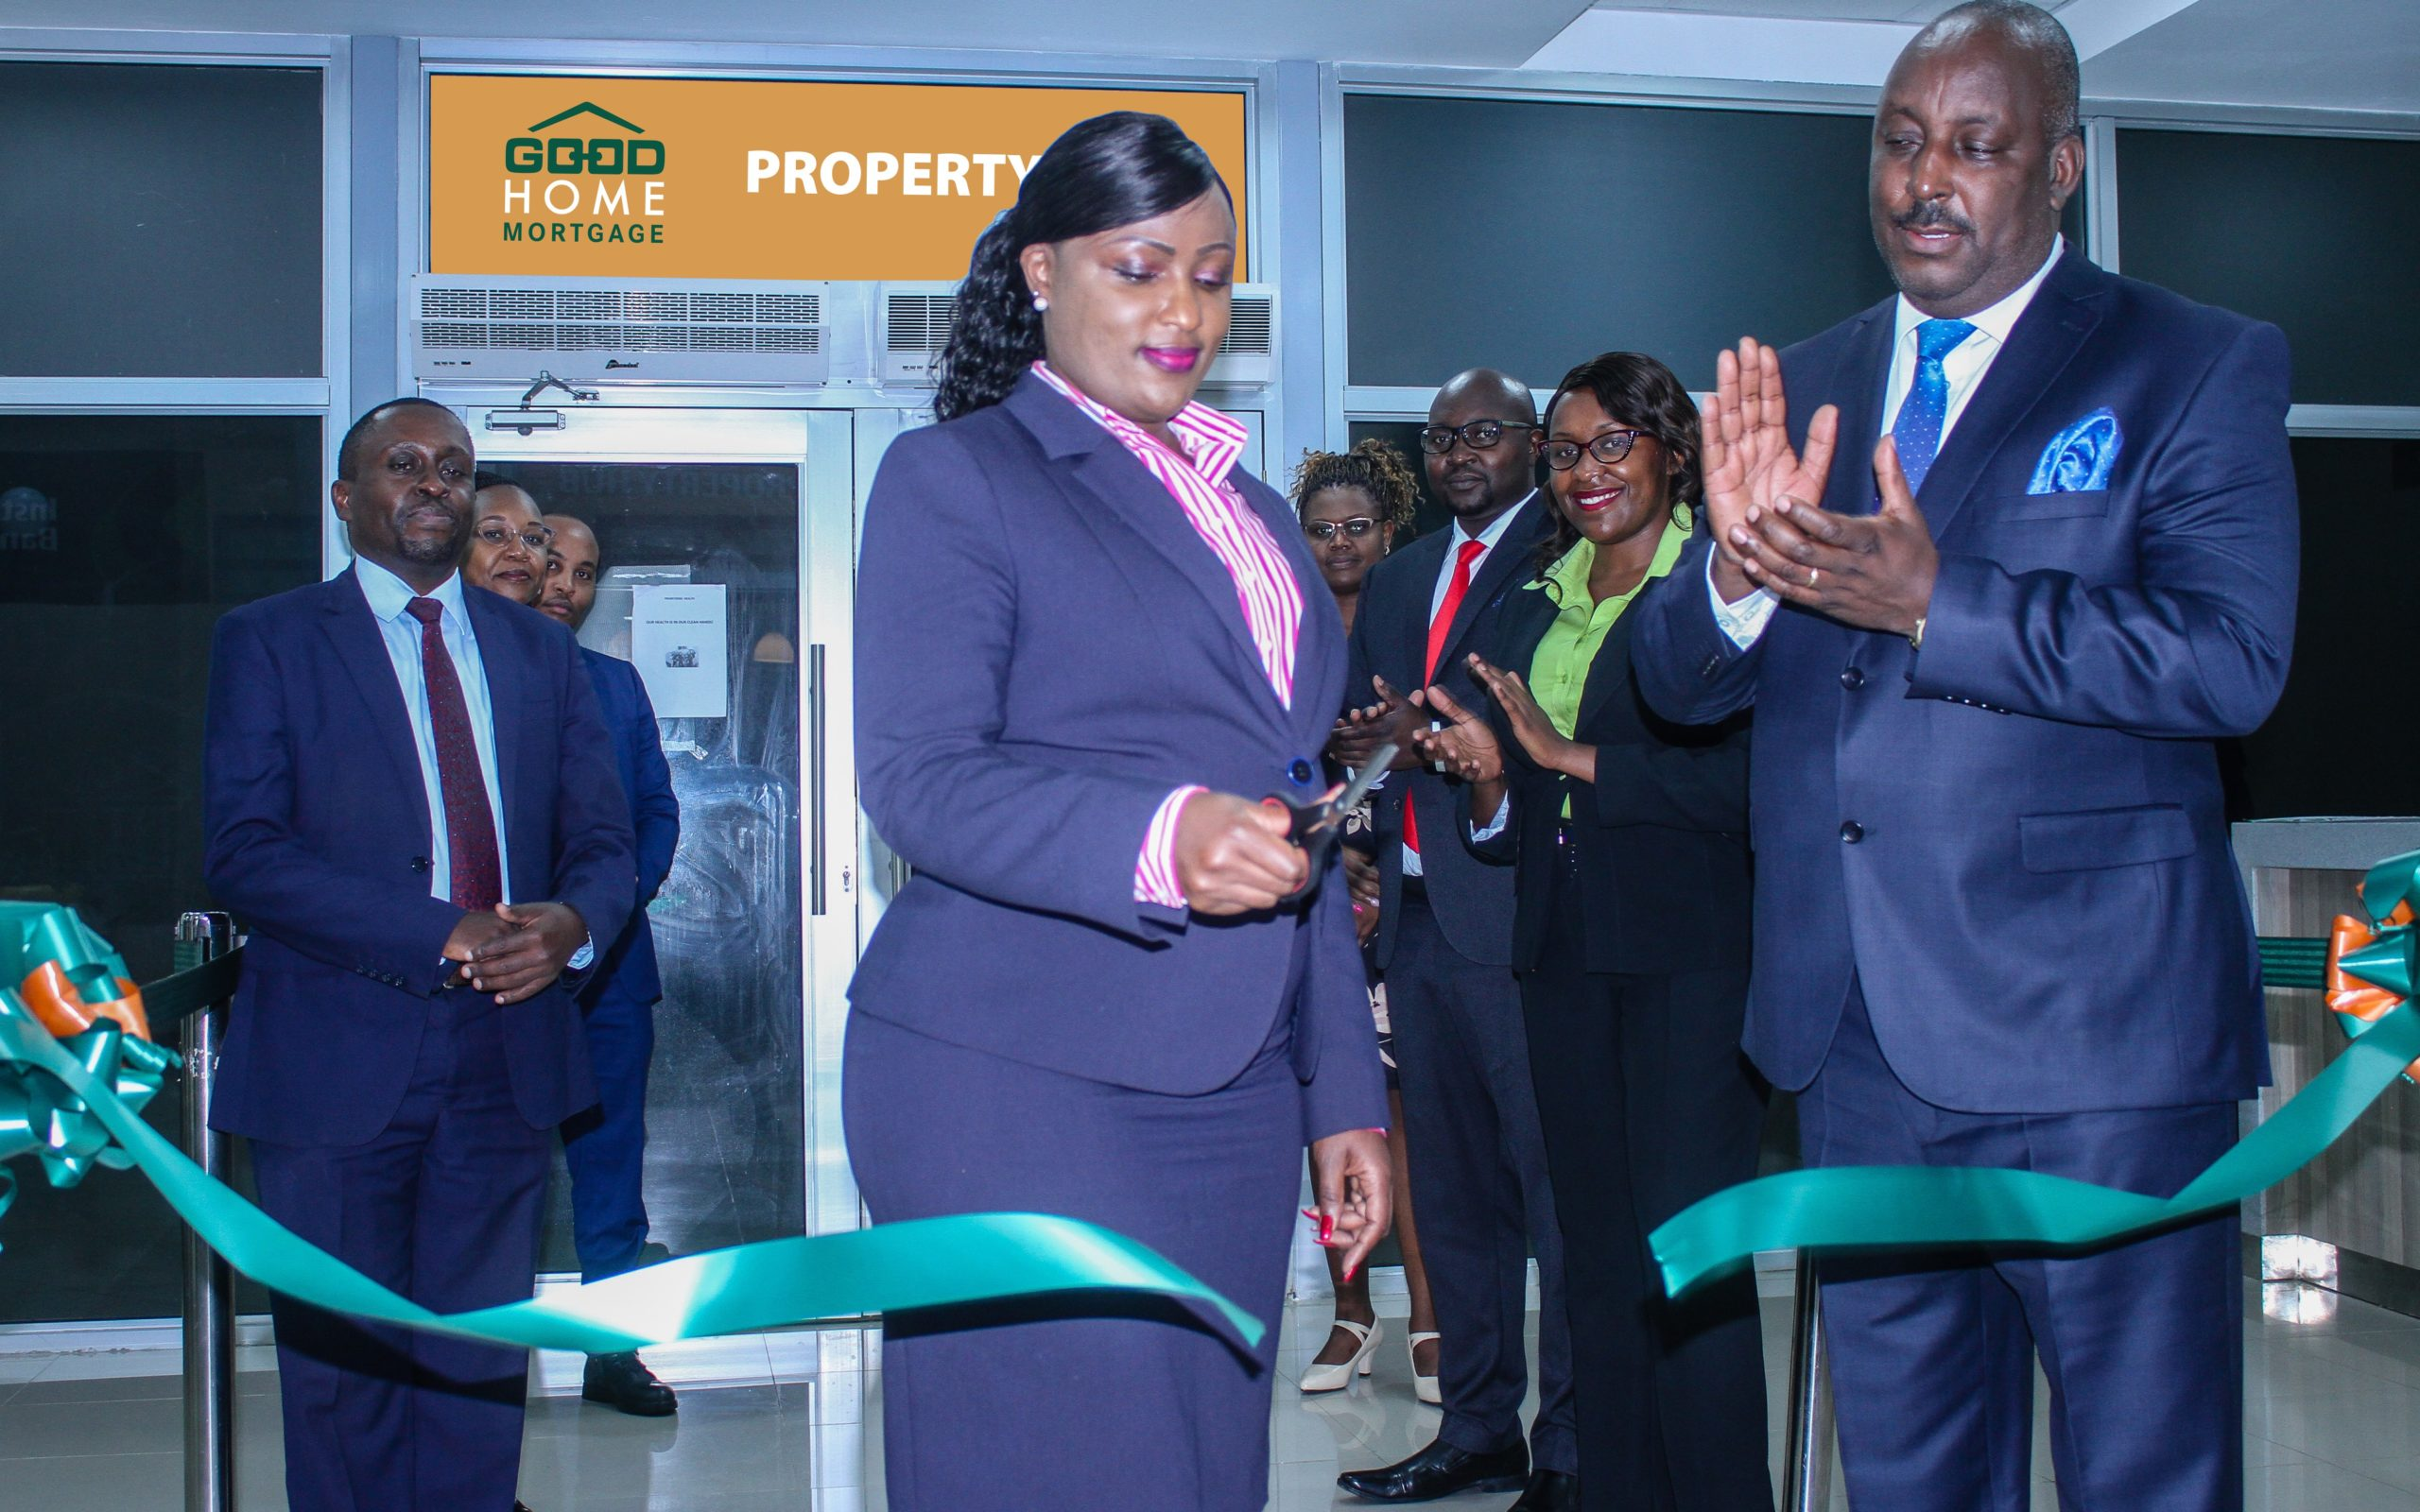 Jacquelyne Waithaka, the Director of Corporate & Institutional Banking at Co-operative Bank and Chris Chege, the Bank's Head of Mortgage Finance launch the GoodHome Property Hub at KUSCCO Center, Upperhill on 28th September 2020. Looking on are Patrick Macharia, the Property Hub Manager and other members of staff who serve customers at the Property Hub.